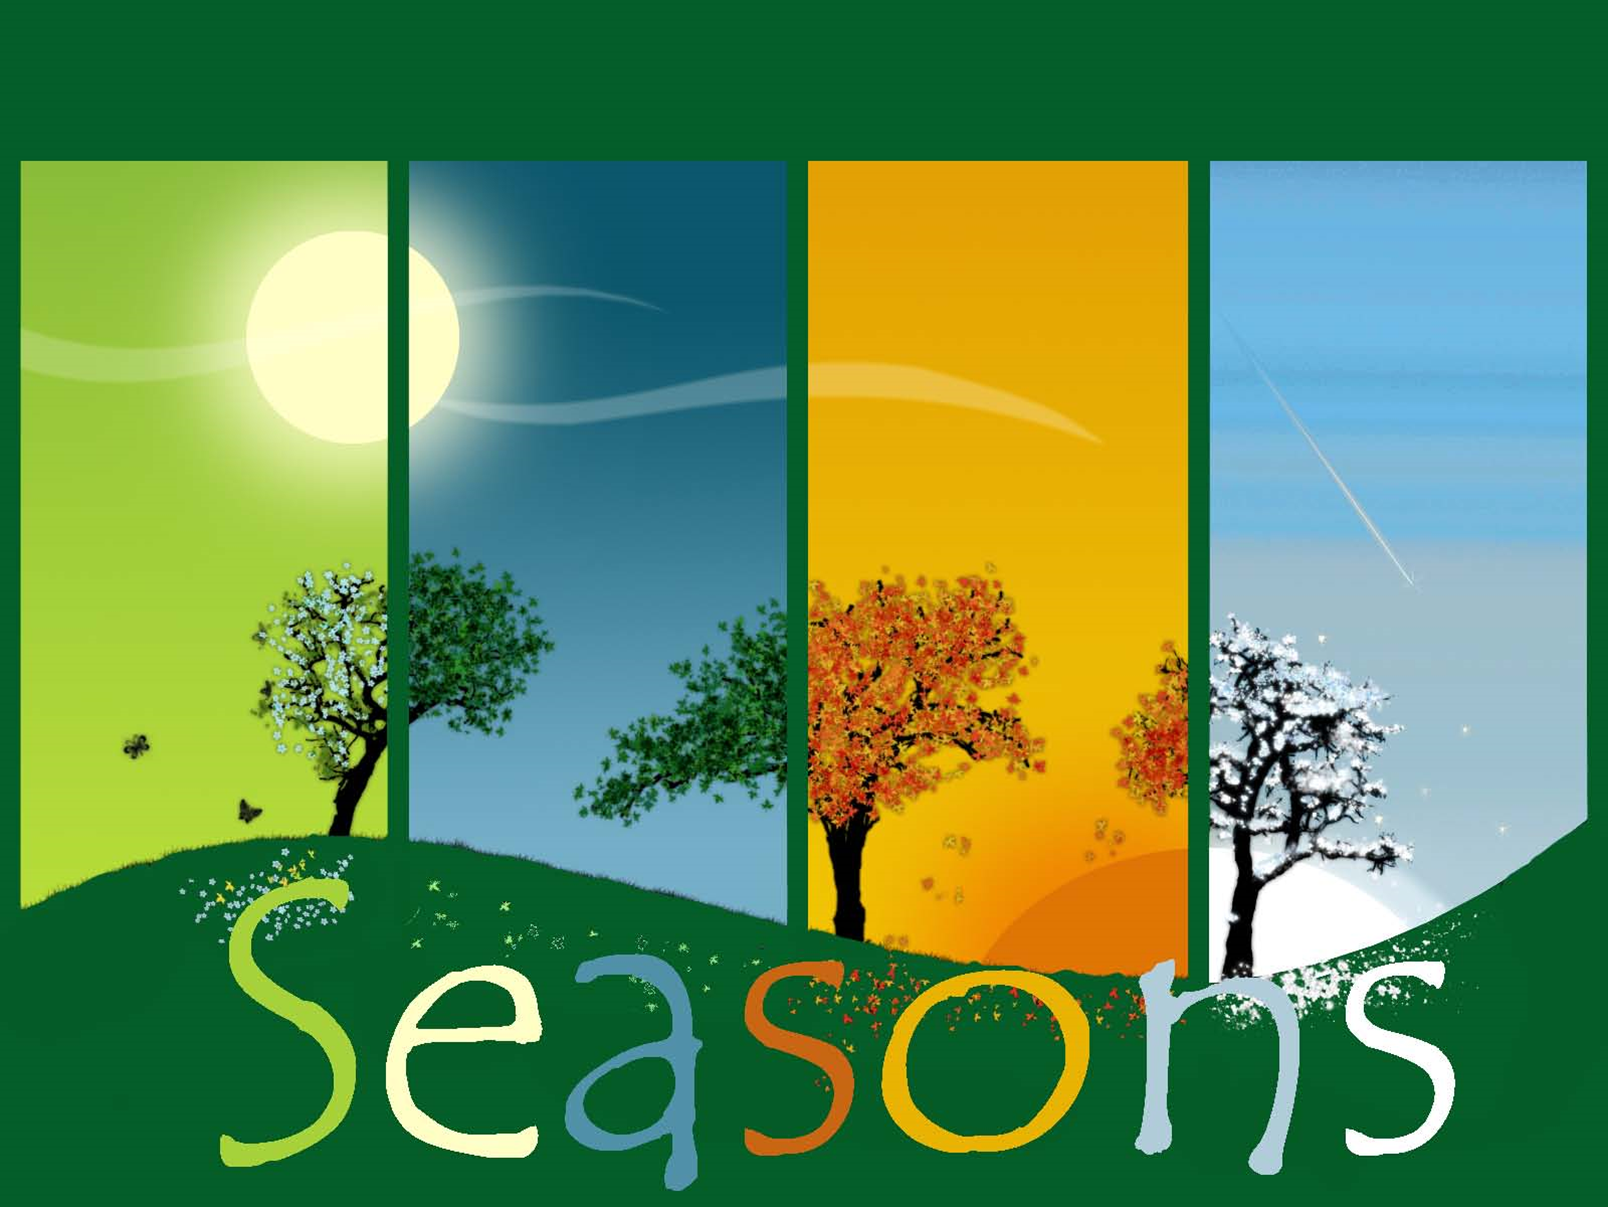 Understanding Seasons